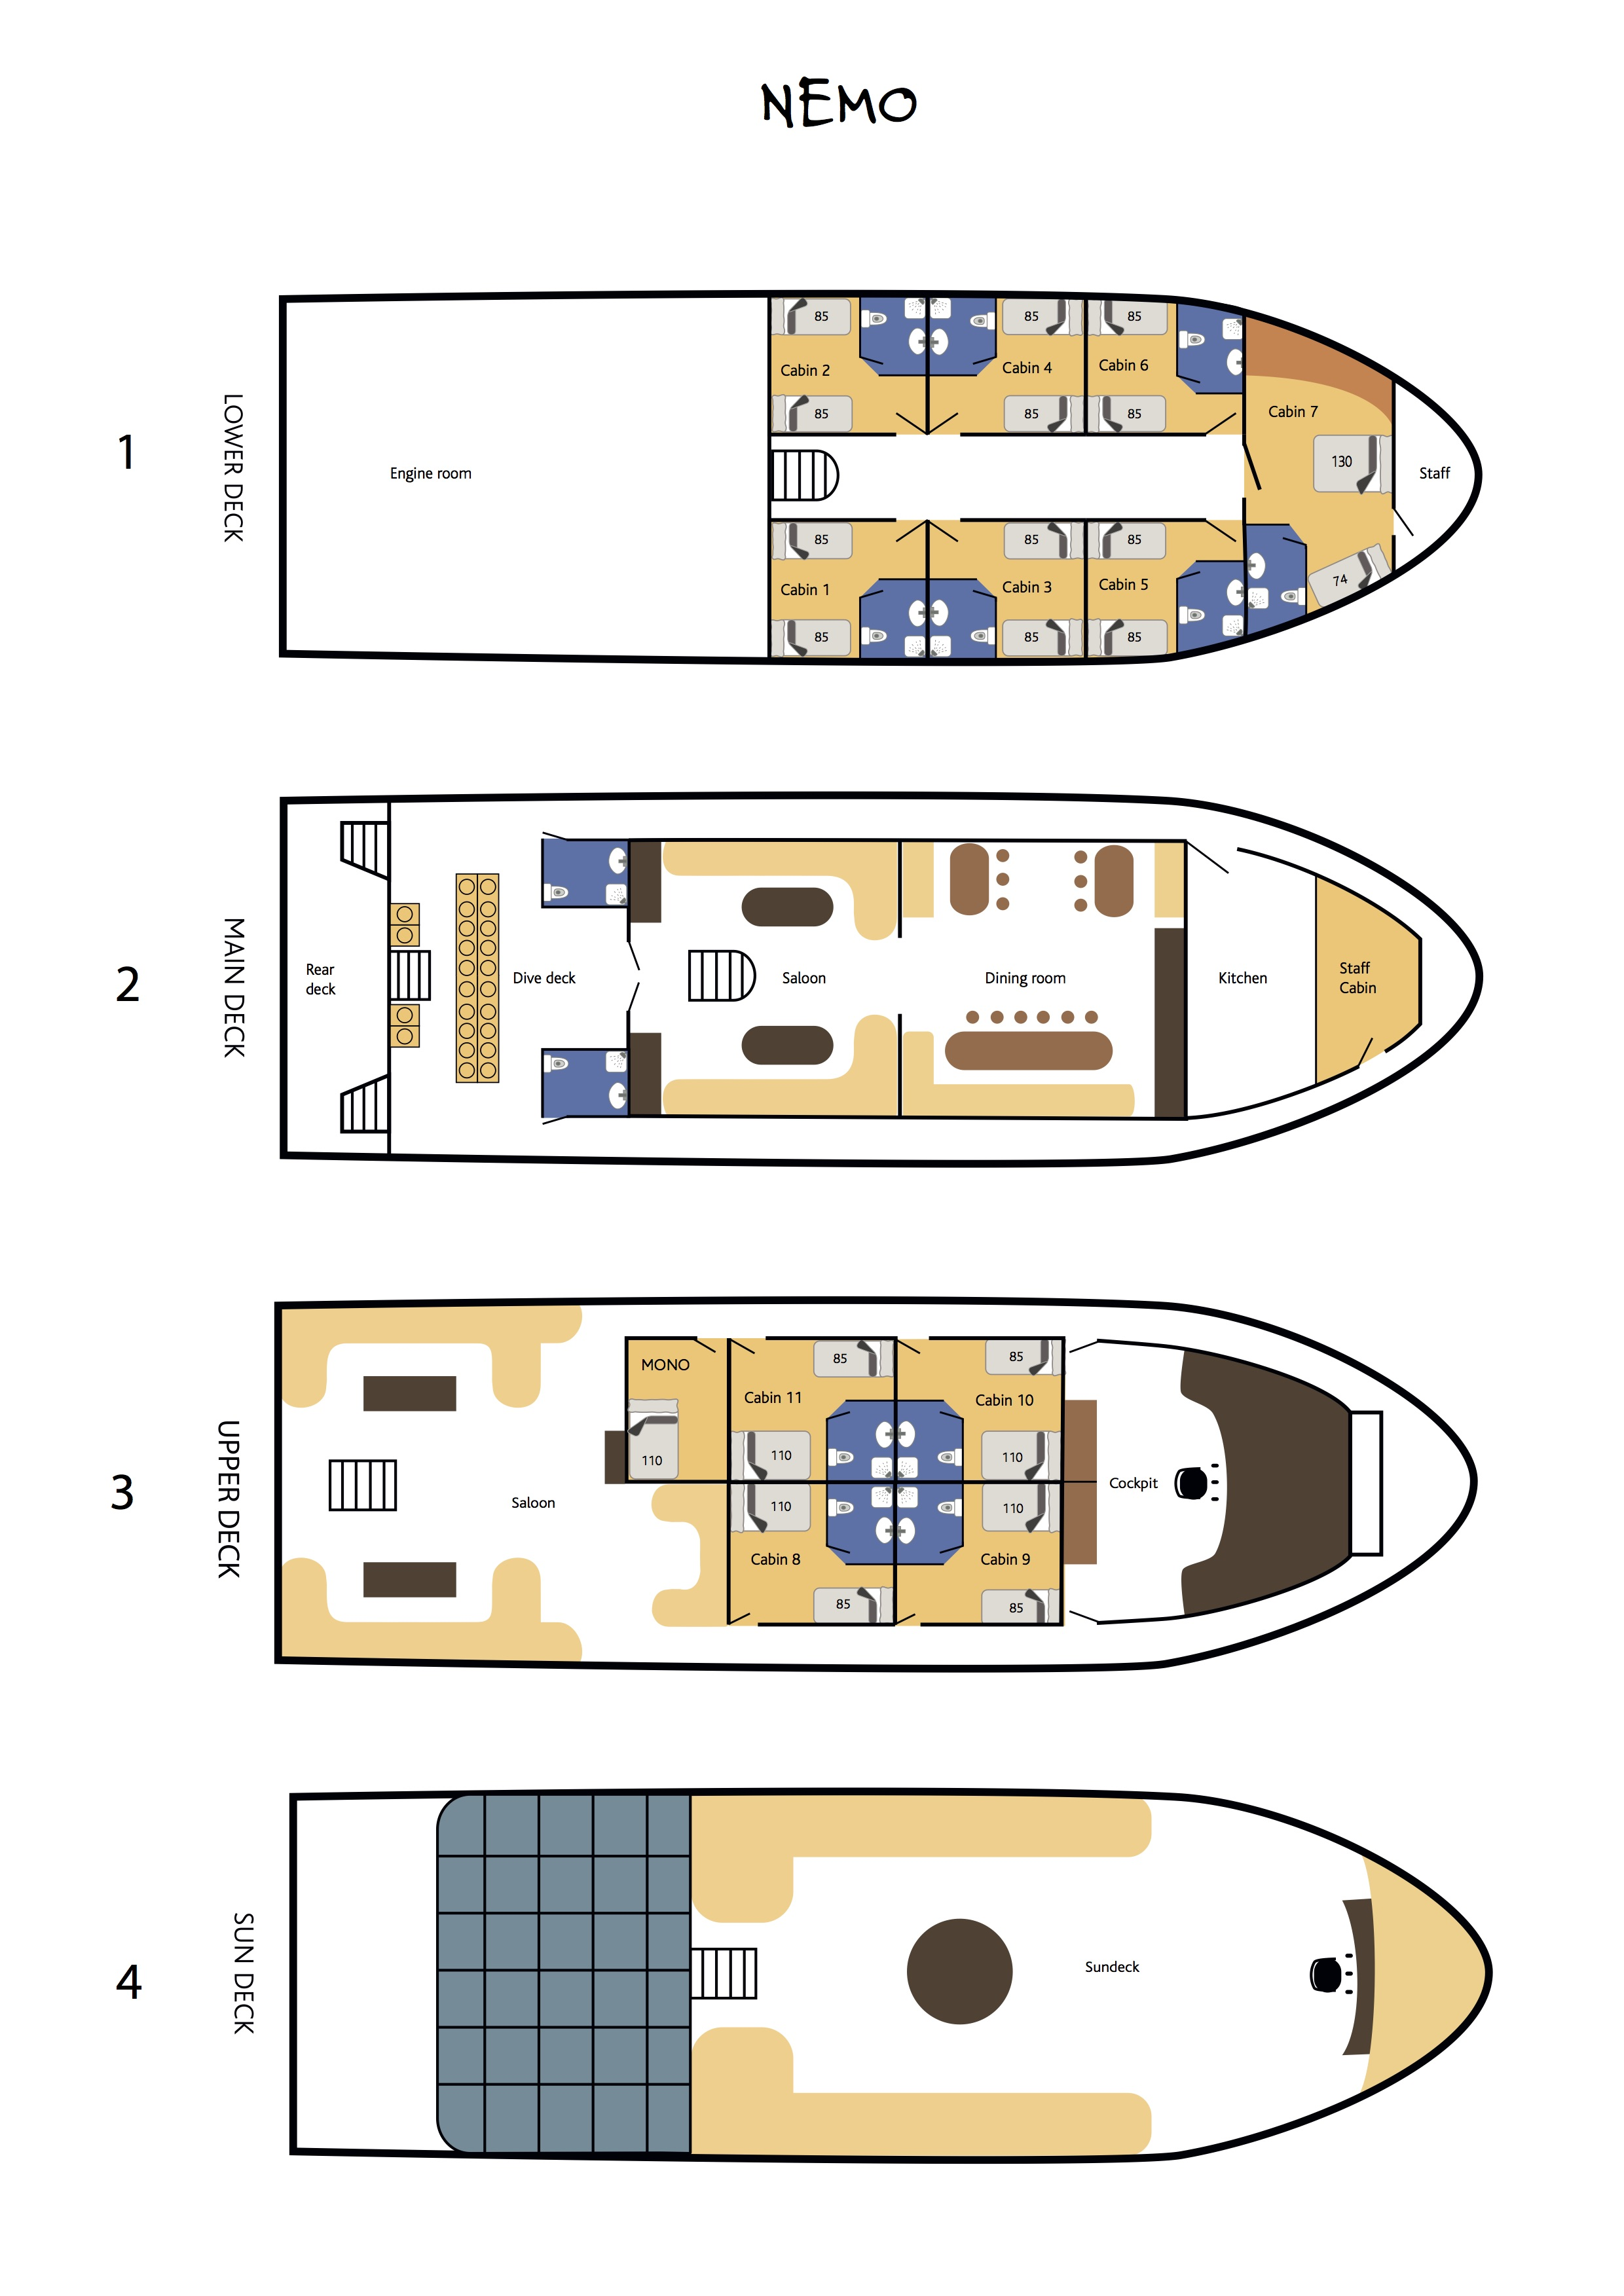 Nemo Deck Plan floorplan